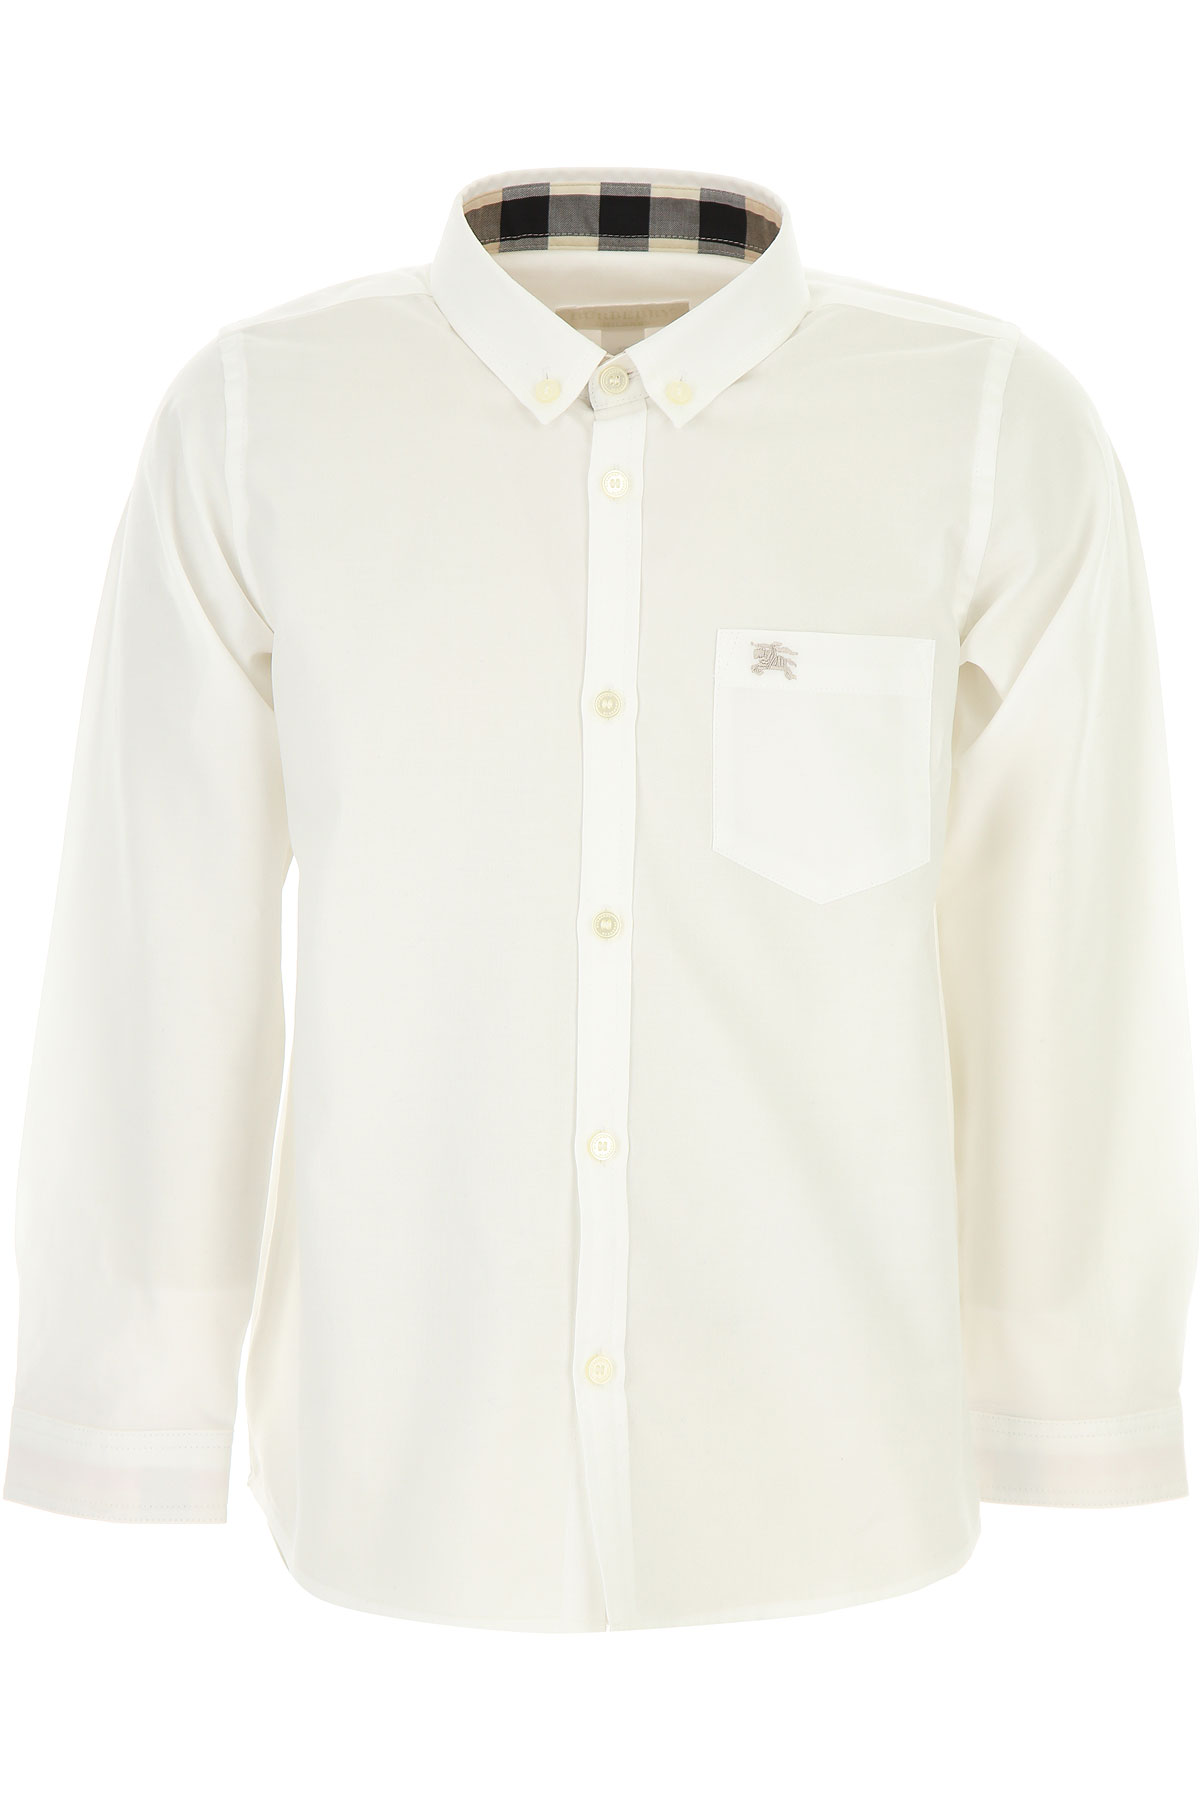 Image of Burberry Kids Shirts for Boys, White, Cotton, 2017, 10Y 4Y 6Y 8Y